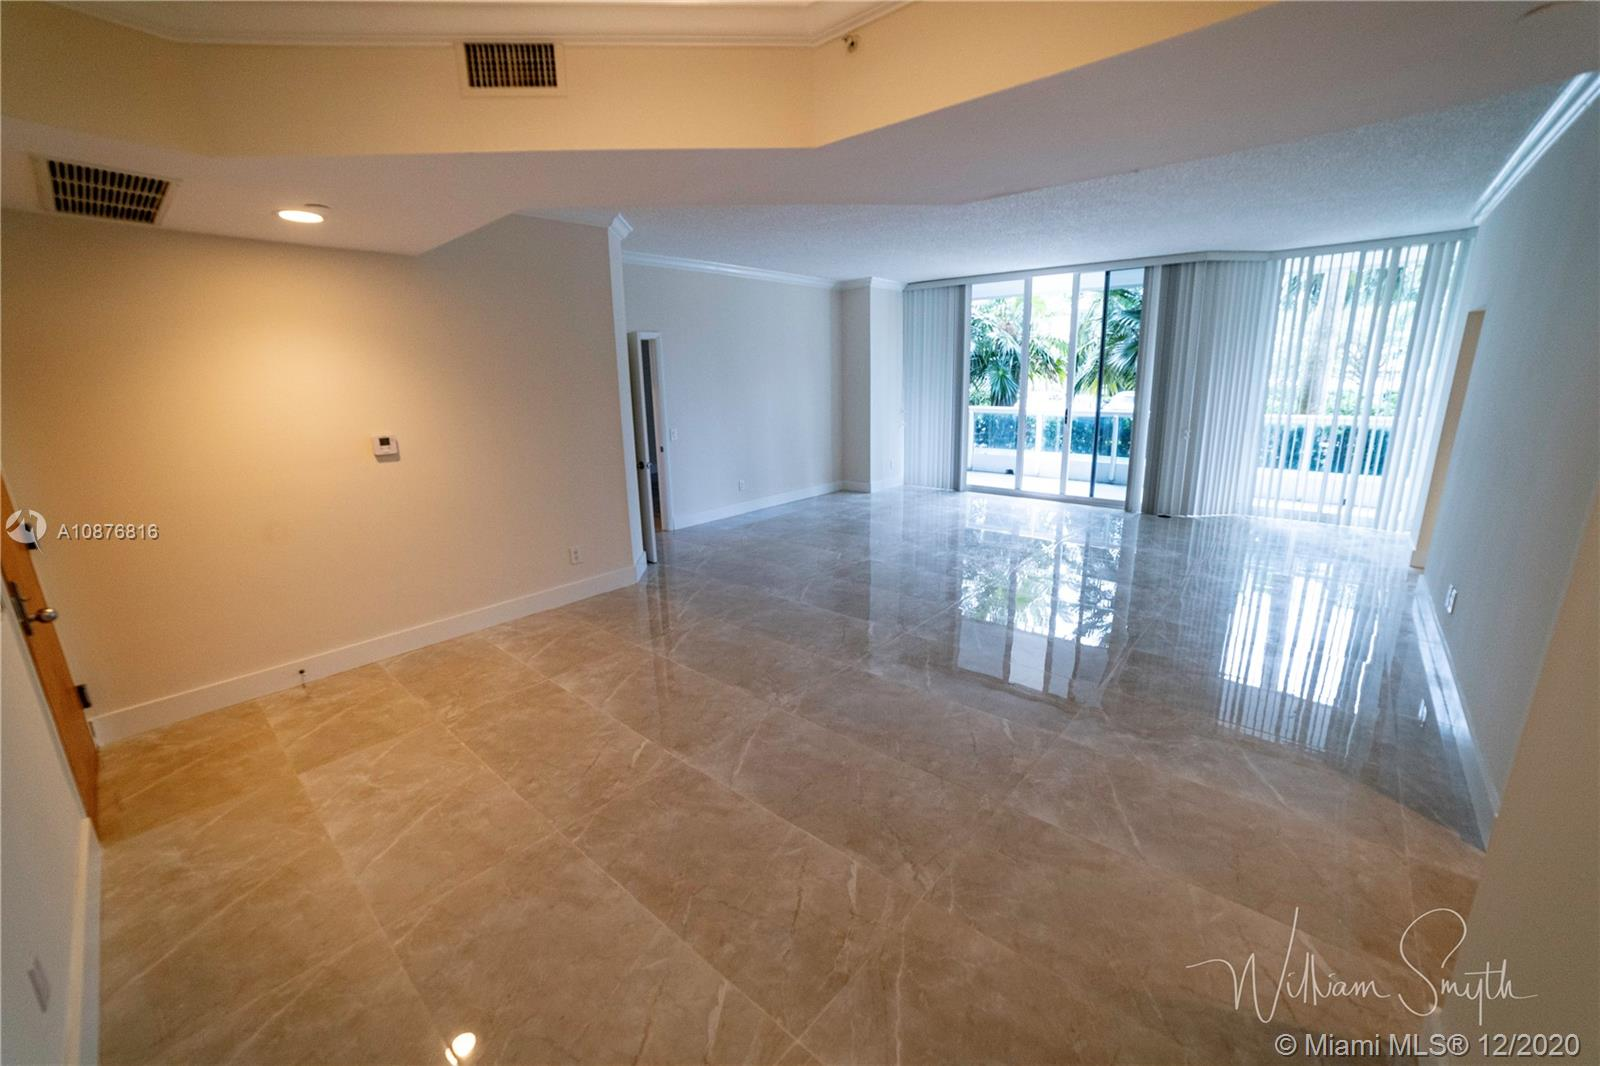 North Tower at the Point #207 - 21205 Yacht Club Dr #207, Aventura, FL 33180